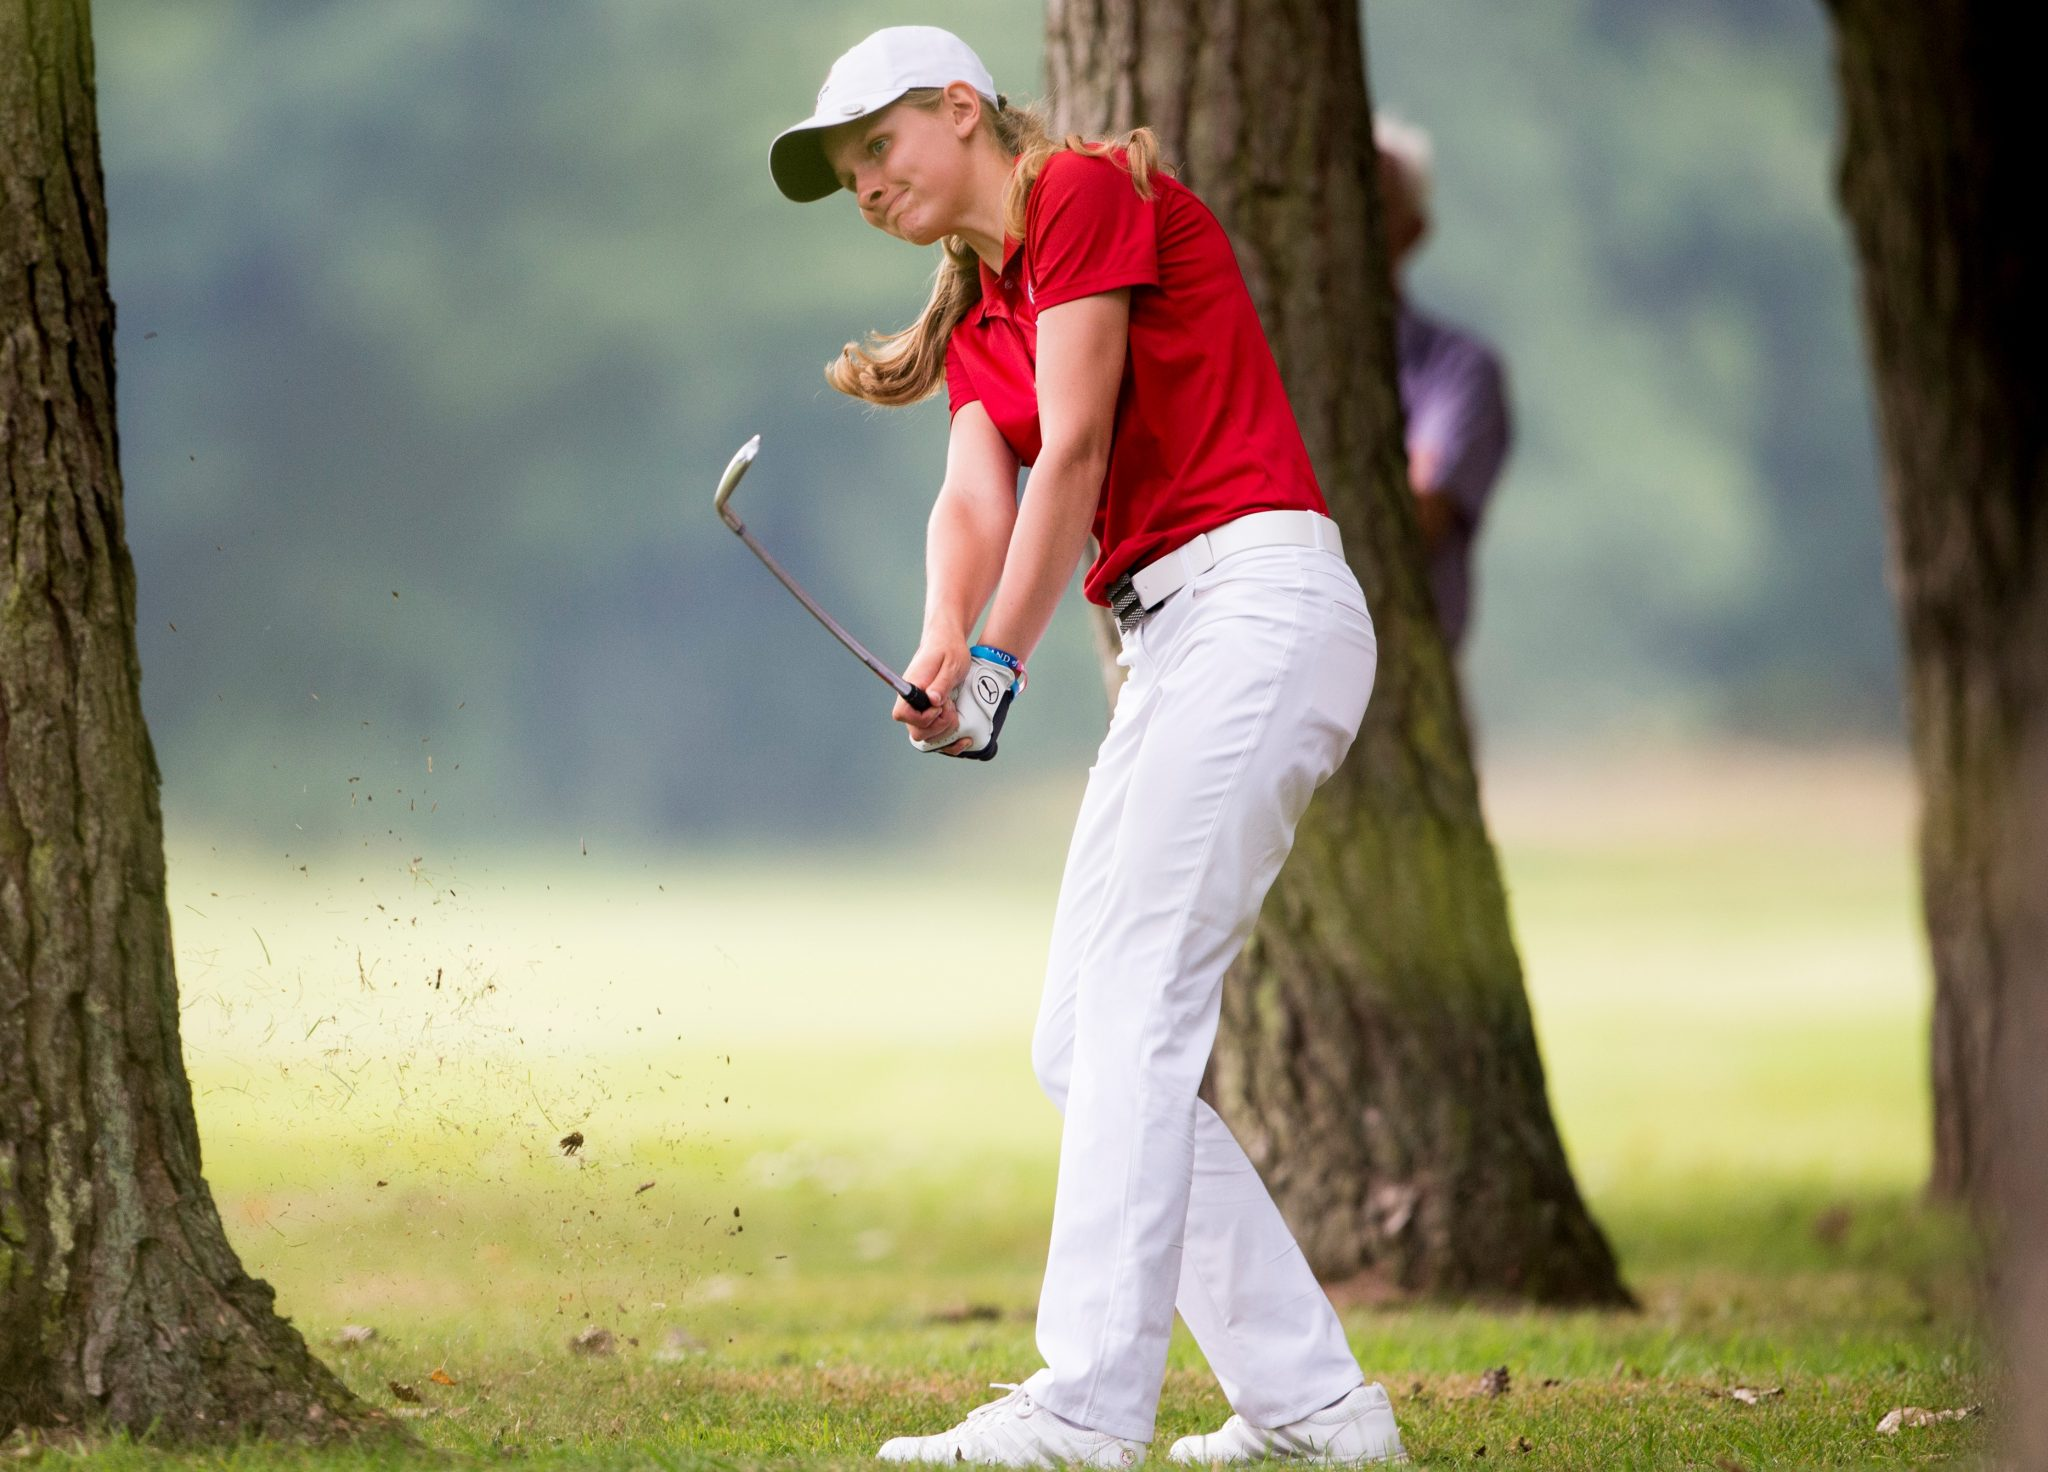 Ludlow Golf Club's Emily Price, who now plays for Kent State University